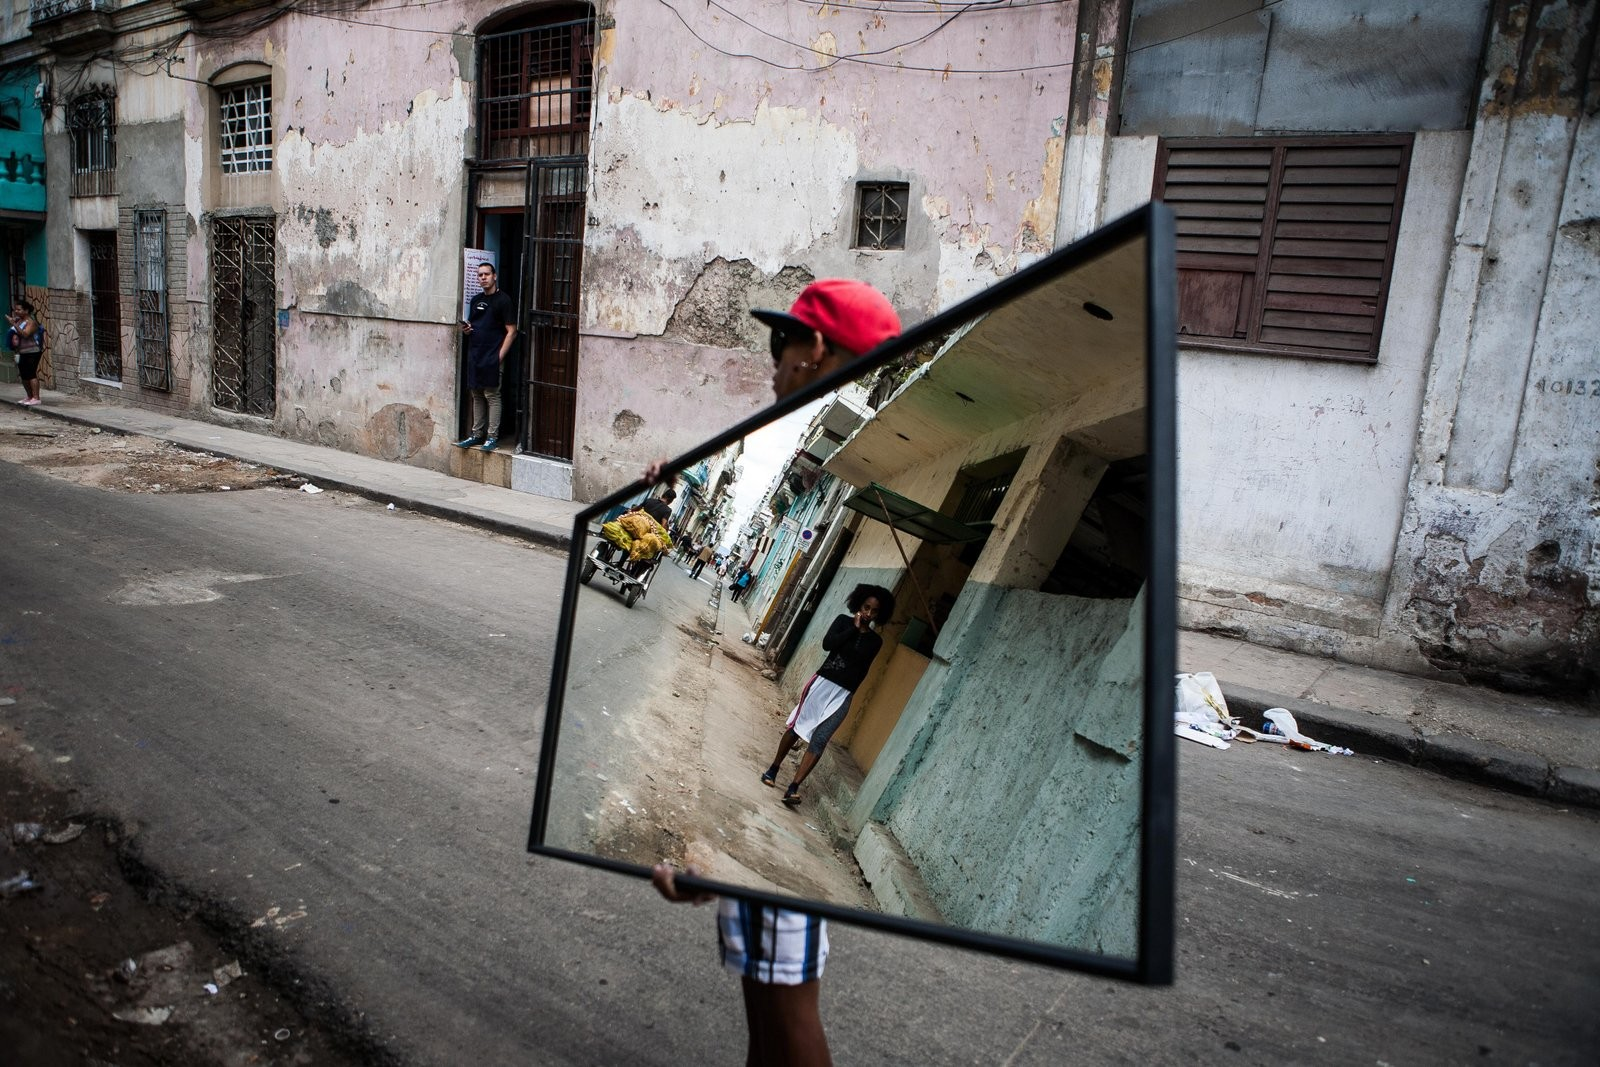 communism and everyday life in Cuba (Foto: David Tesinsky)